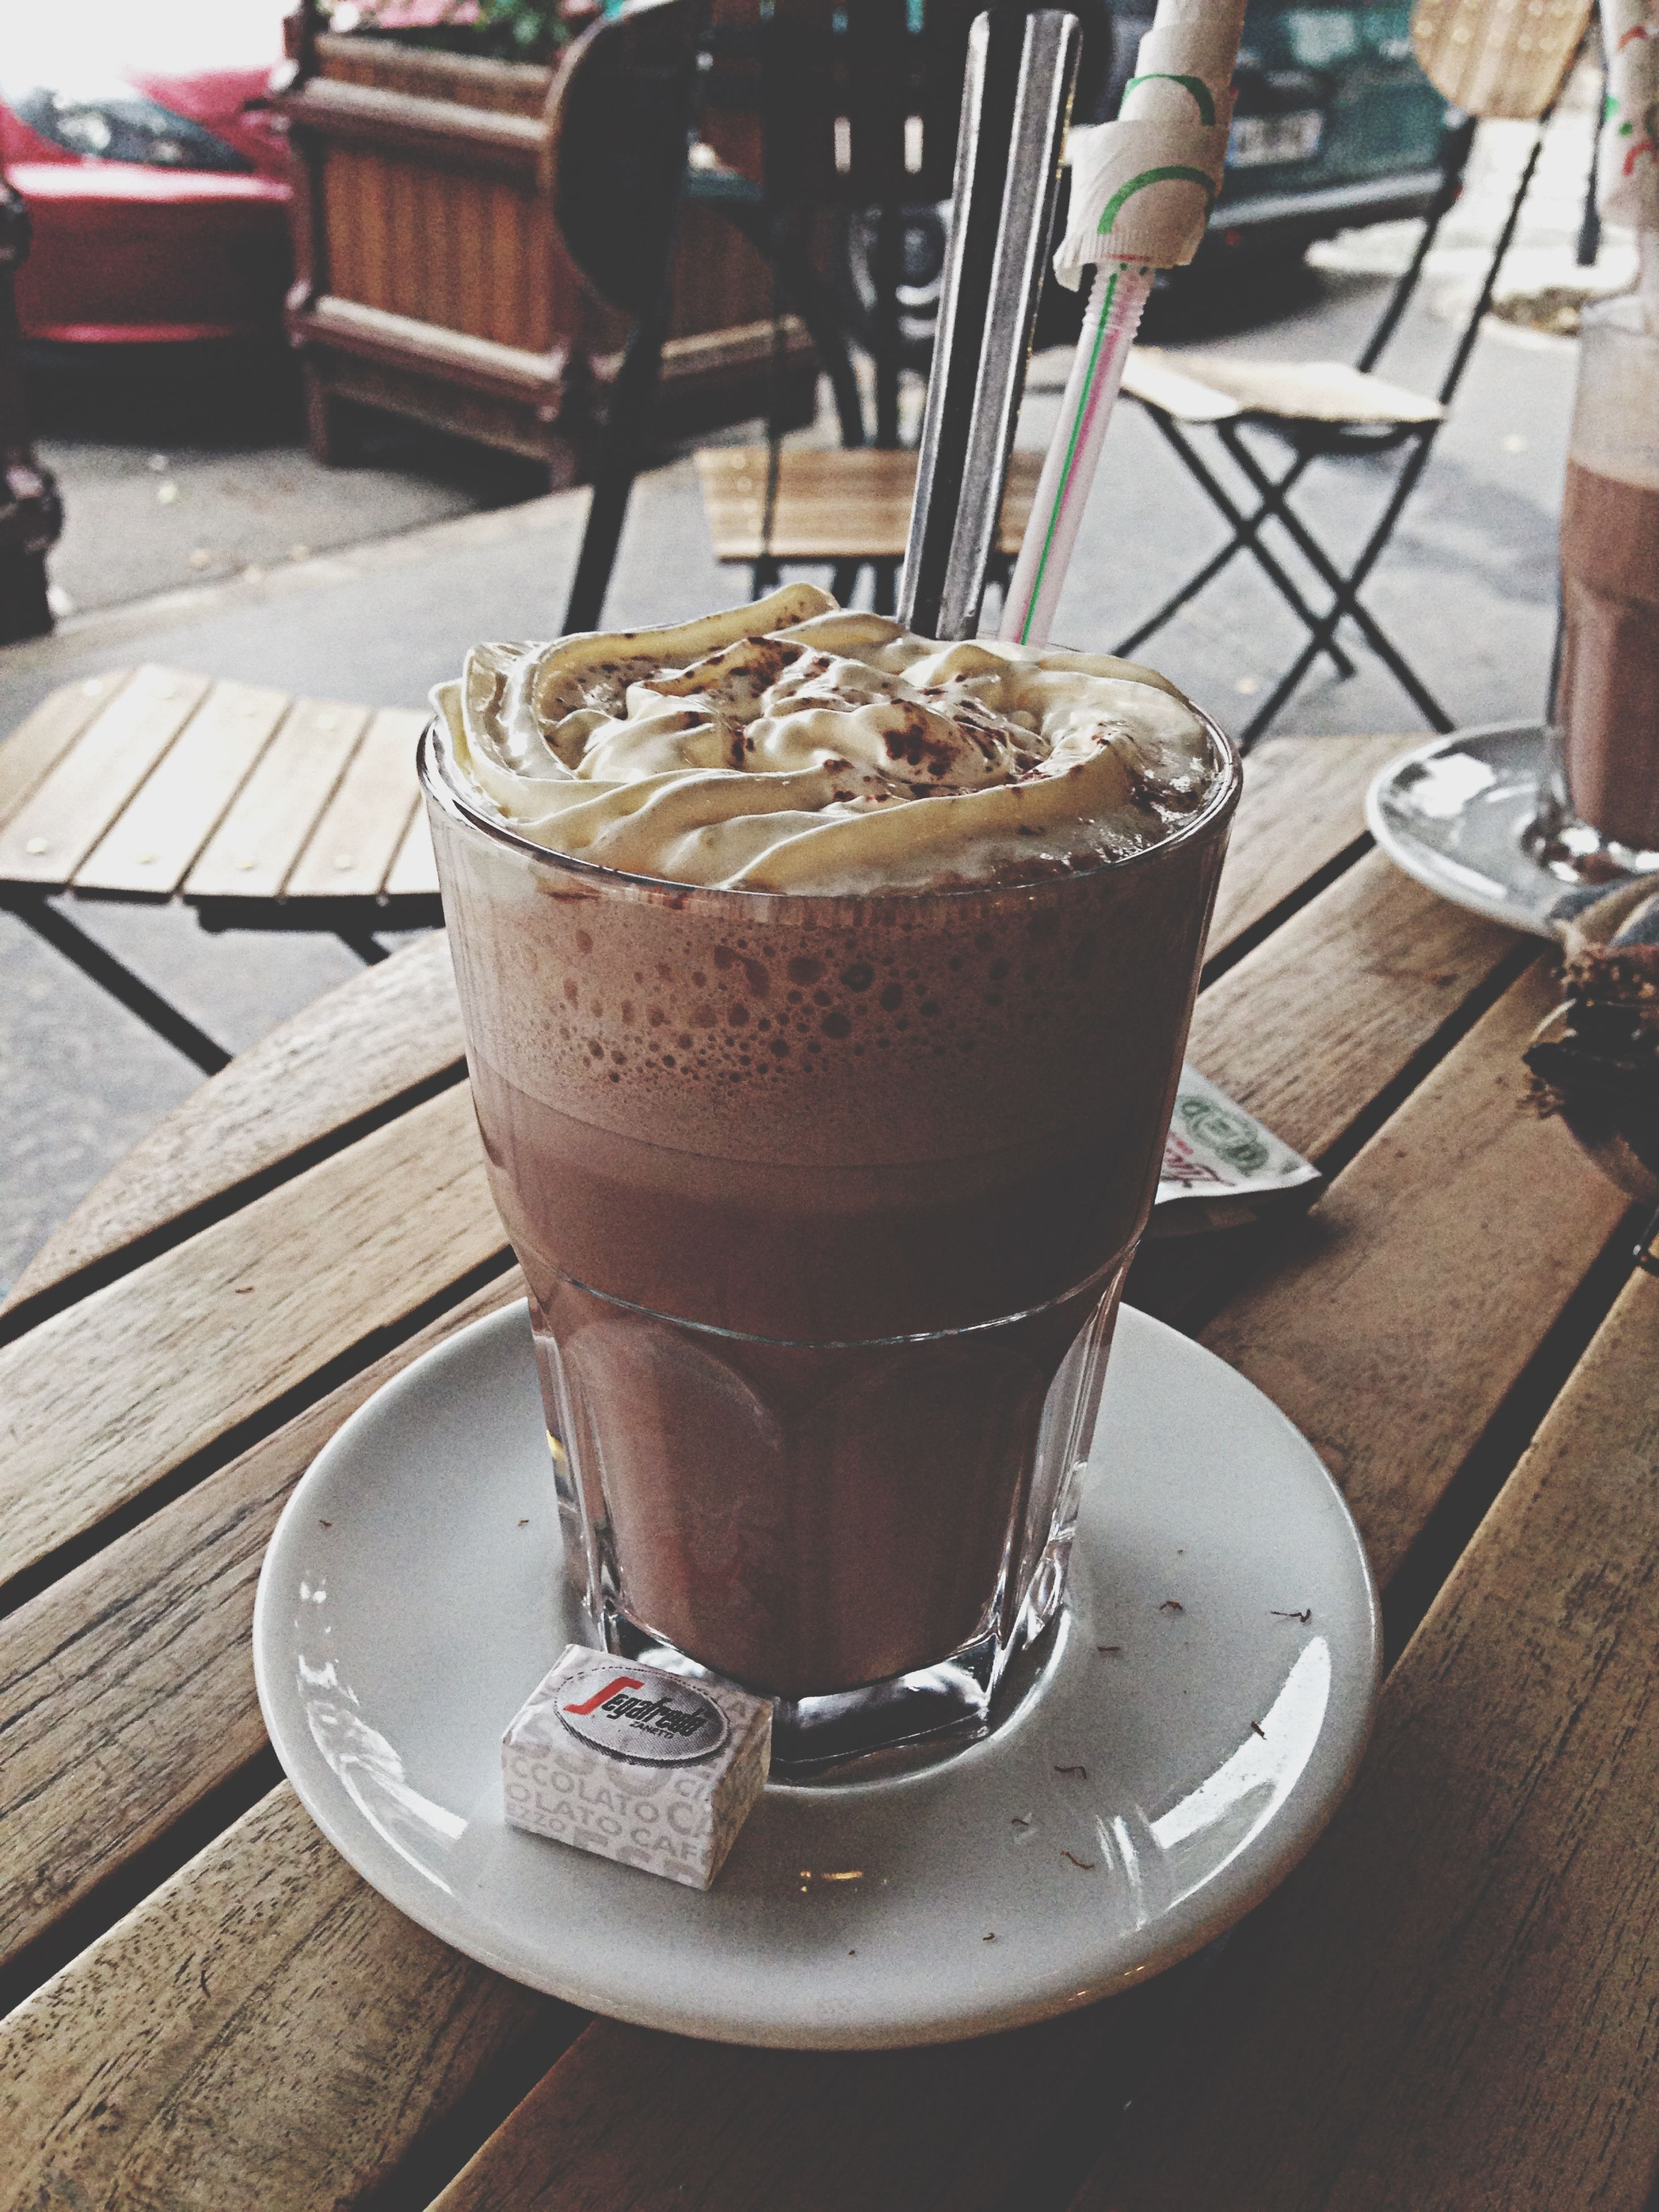 food and drink, drink, table, freshness, refreshment, drinking glass, indoors, close-up, still life, restaurant, food, spoon, sweet food, indulgence, serving size, unhealthy eating, focus on foreground, coffee - drink, cafe, frothy drink